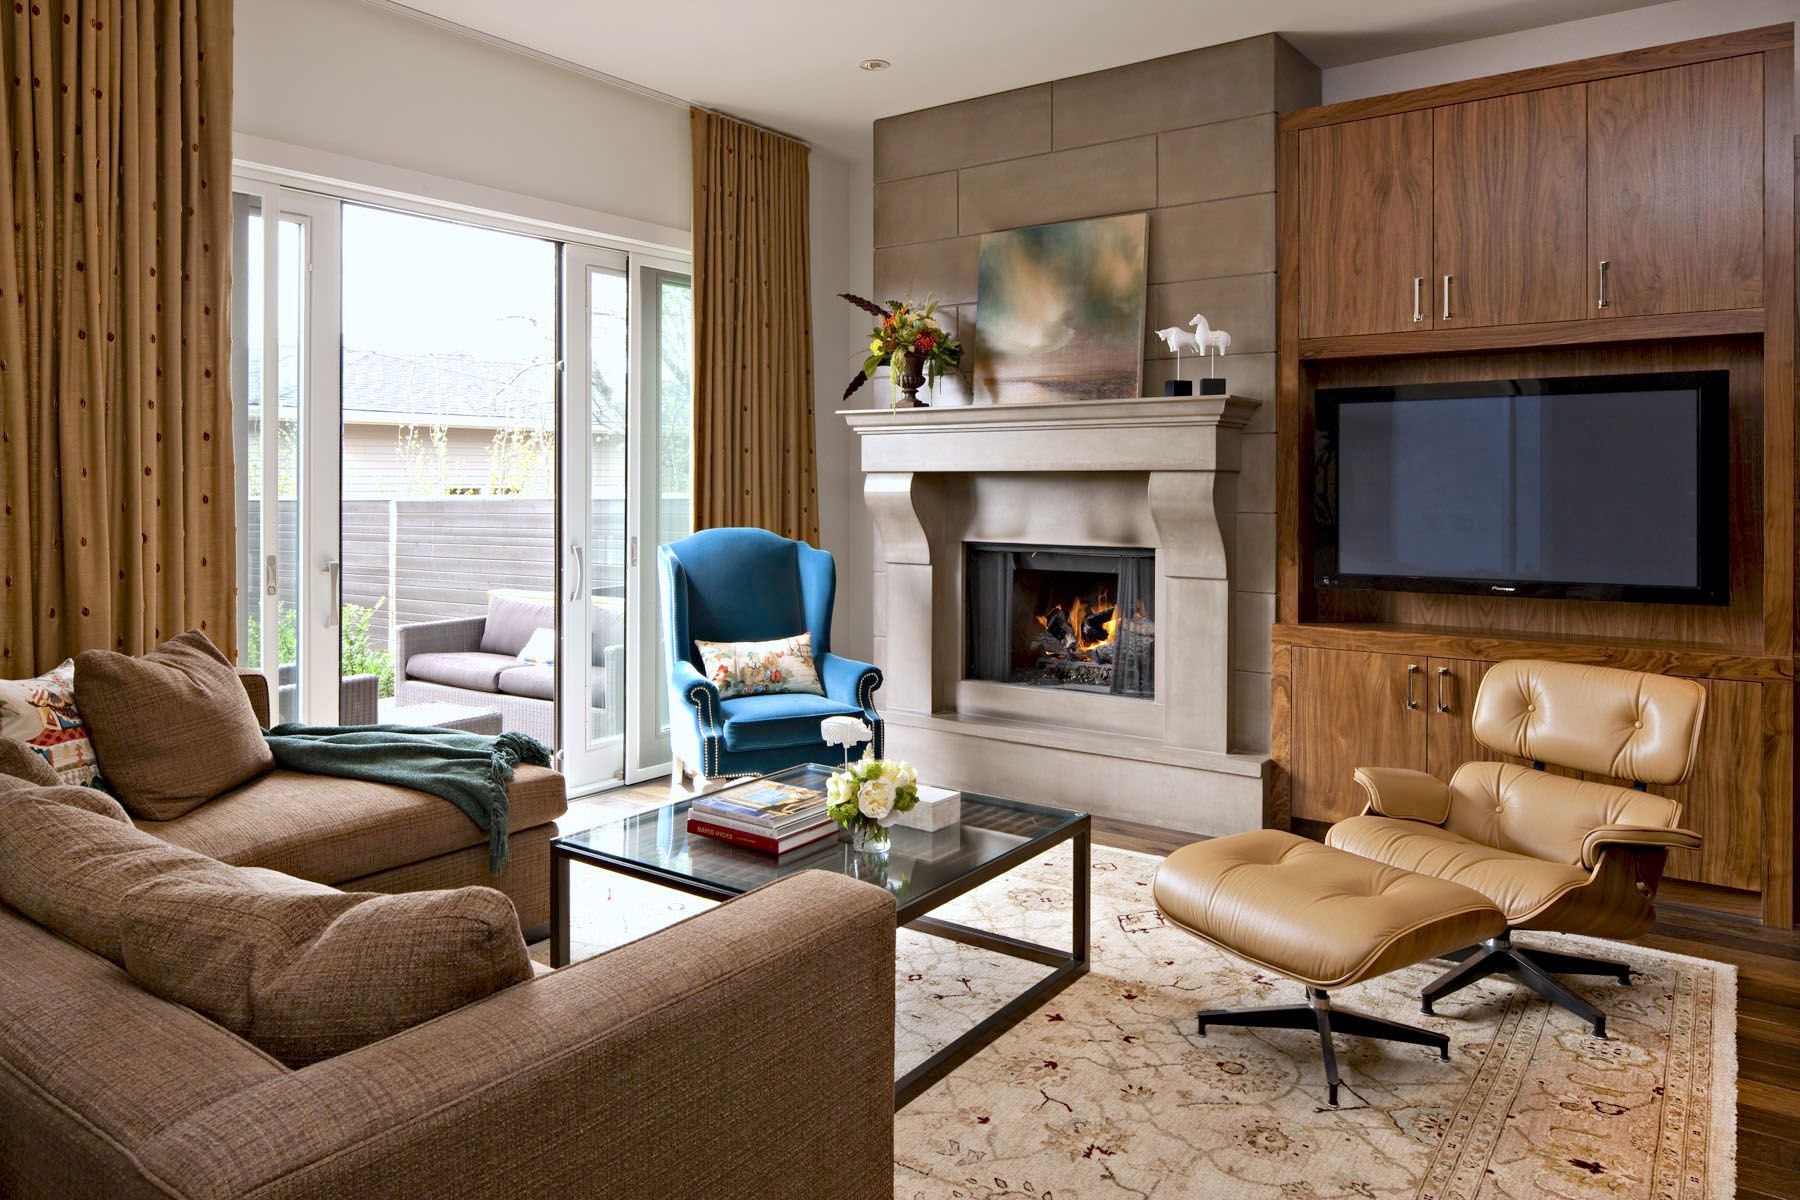 Mid century marvel transitional living room with mixed modern and traditional style furniture